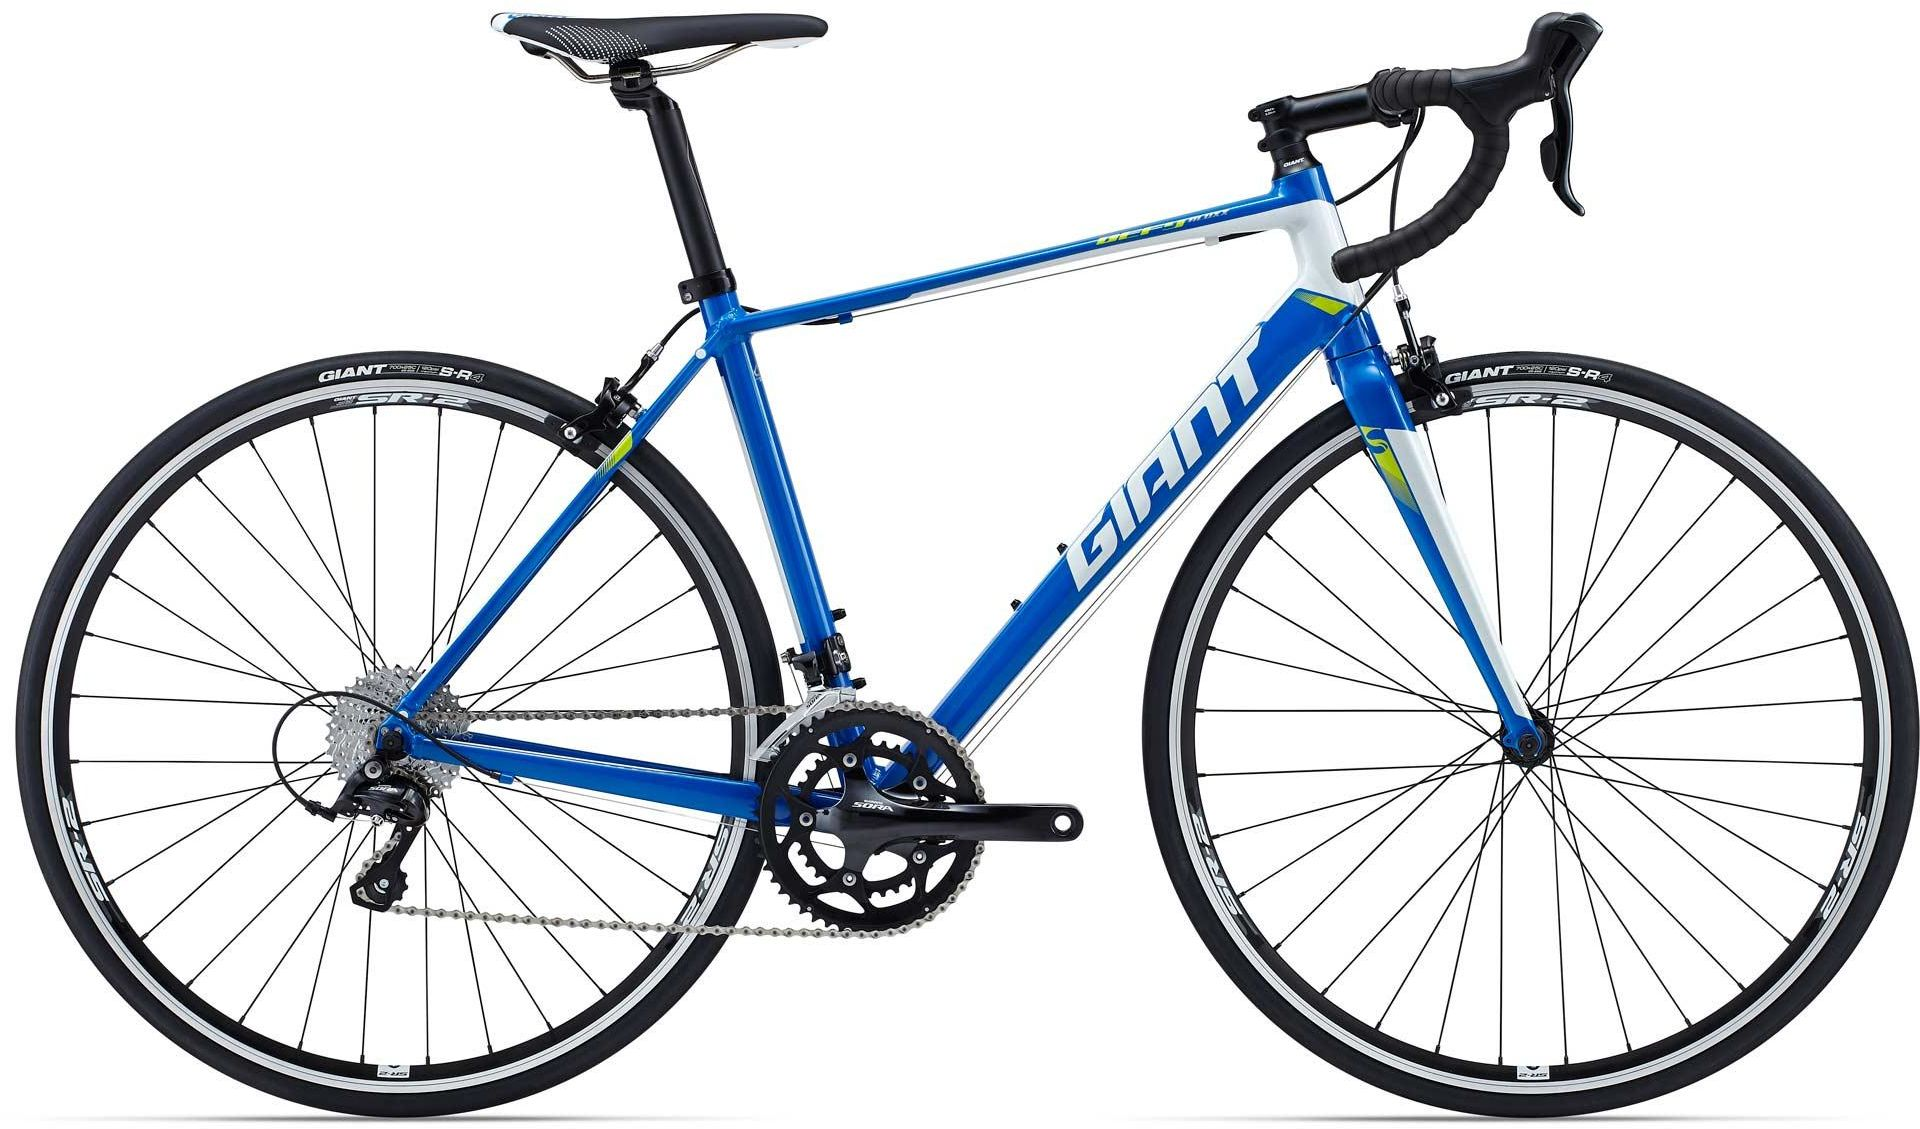 f334a6637a4 Giant Defy 3 2015 review - The Bike List